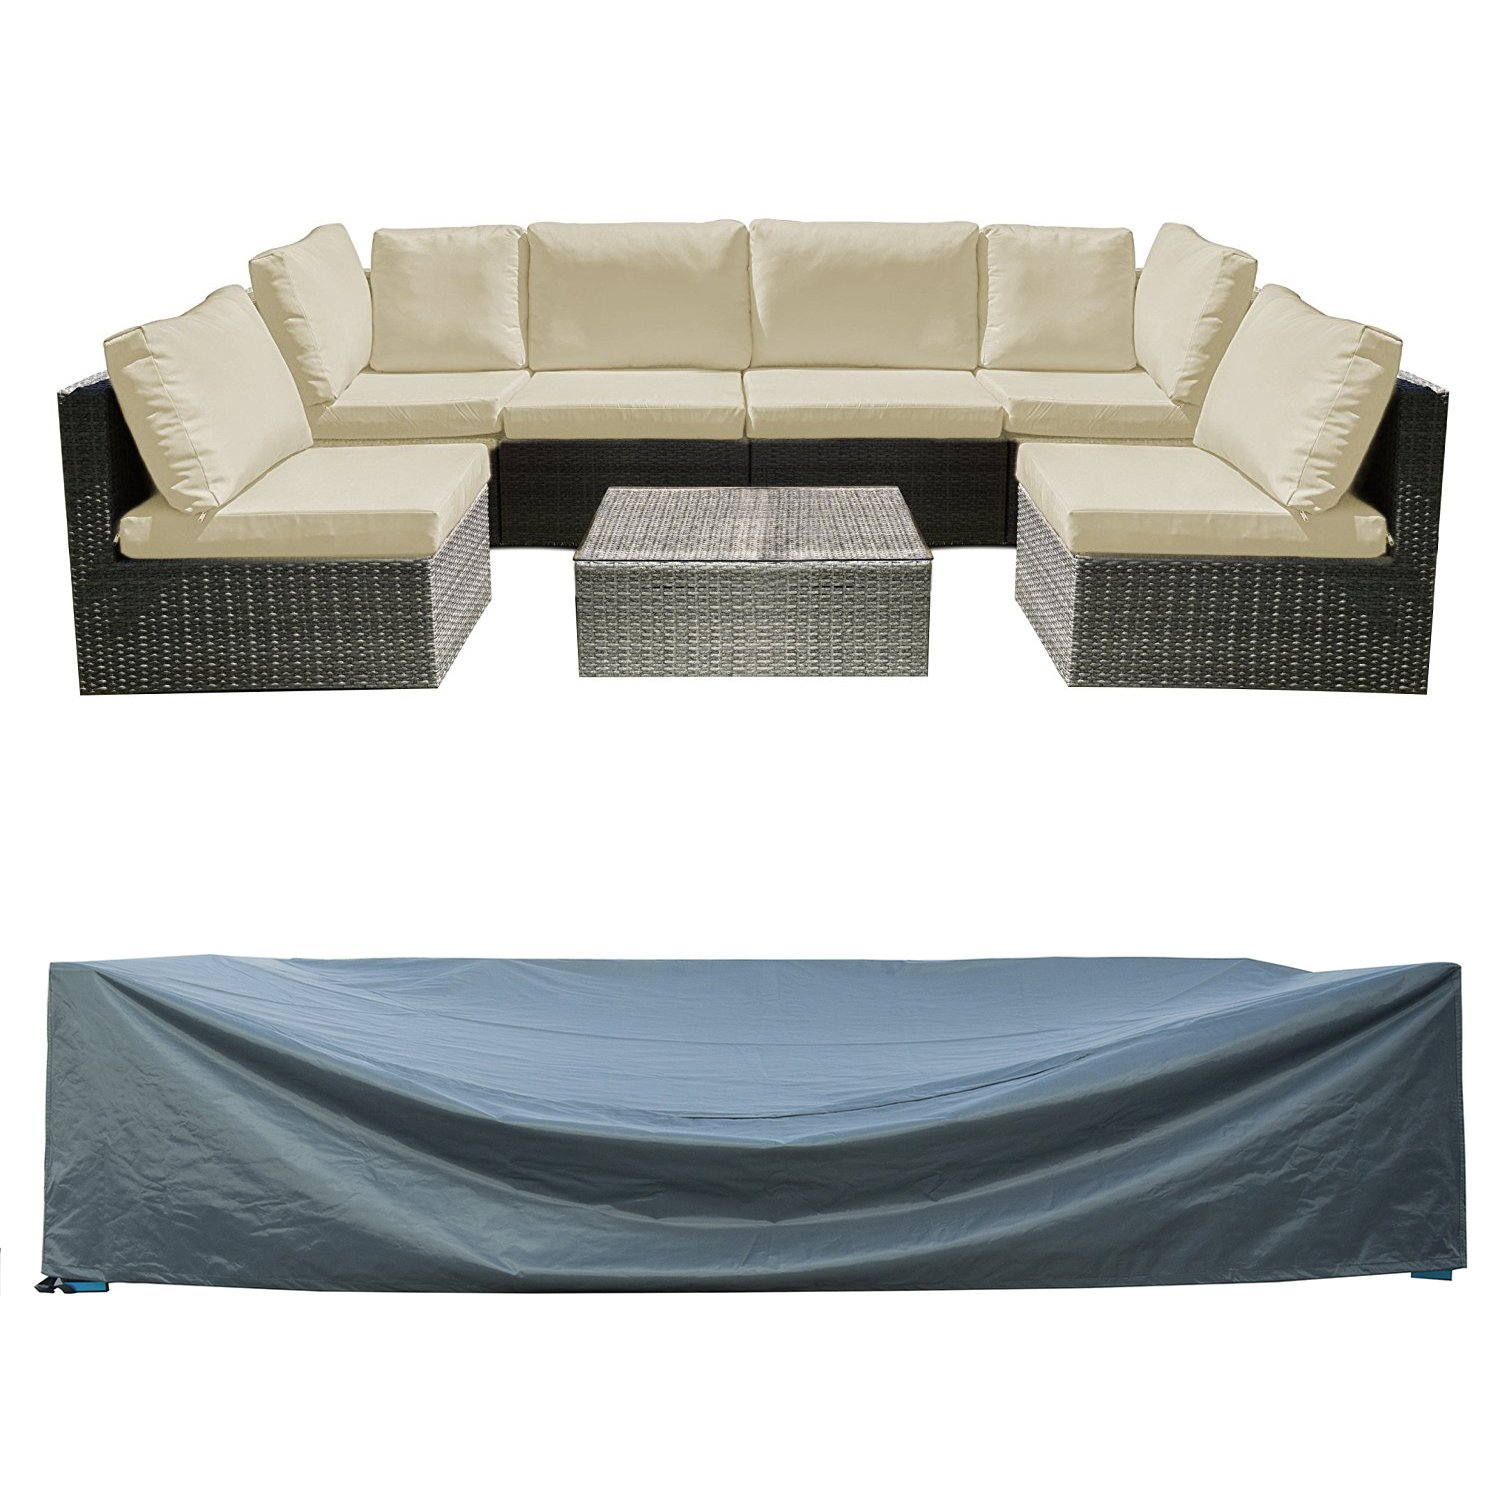 Patio Furniture Set Cover Outdoor Sectional Sofa Set Covers Outdoor Table and Chair Set Covers Water Resistant Heavy Duty 128'' L x 83'' W x 28'' H